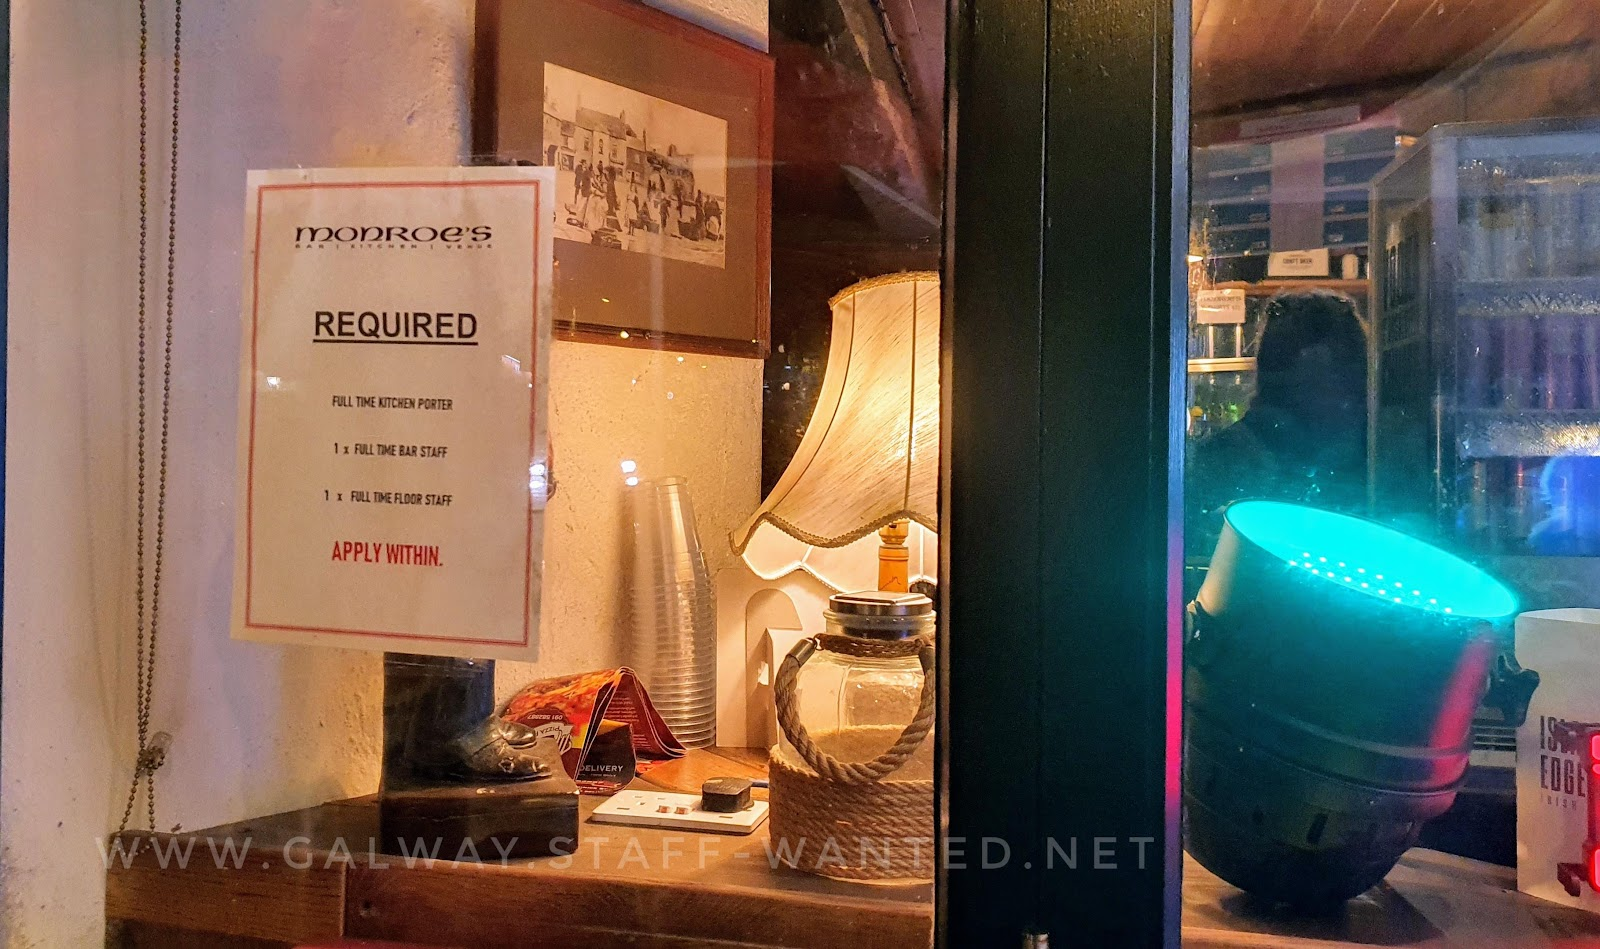 bar window with job advertisement and a large spotlight with a green filter, and an old fashioned table lamp